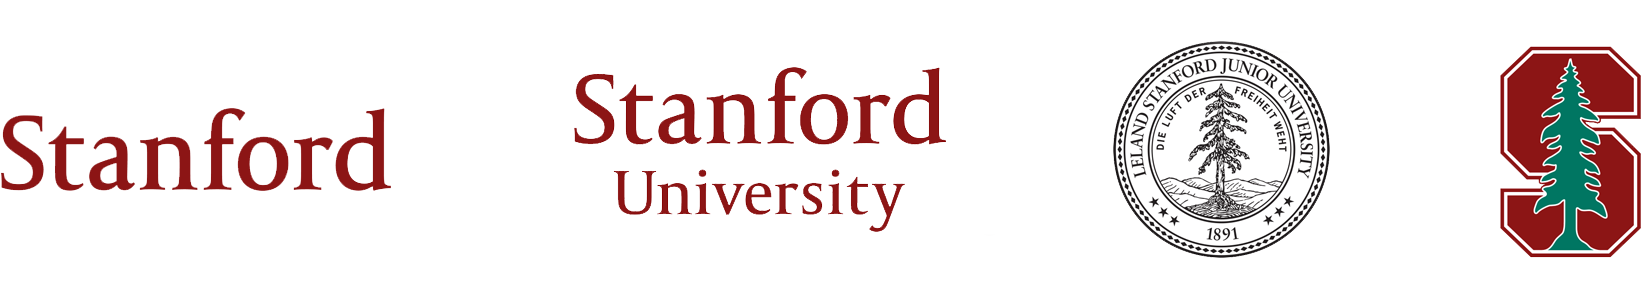 Standford University Logo - Name and Emblems | Stanford Identity Toolkit